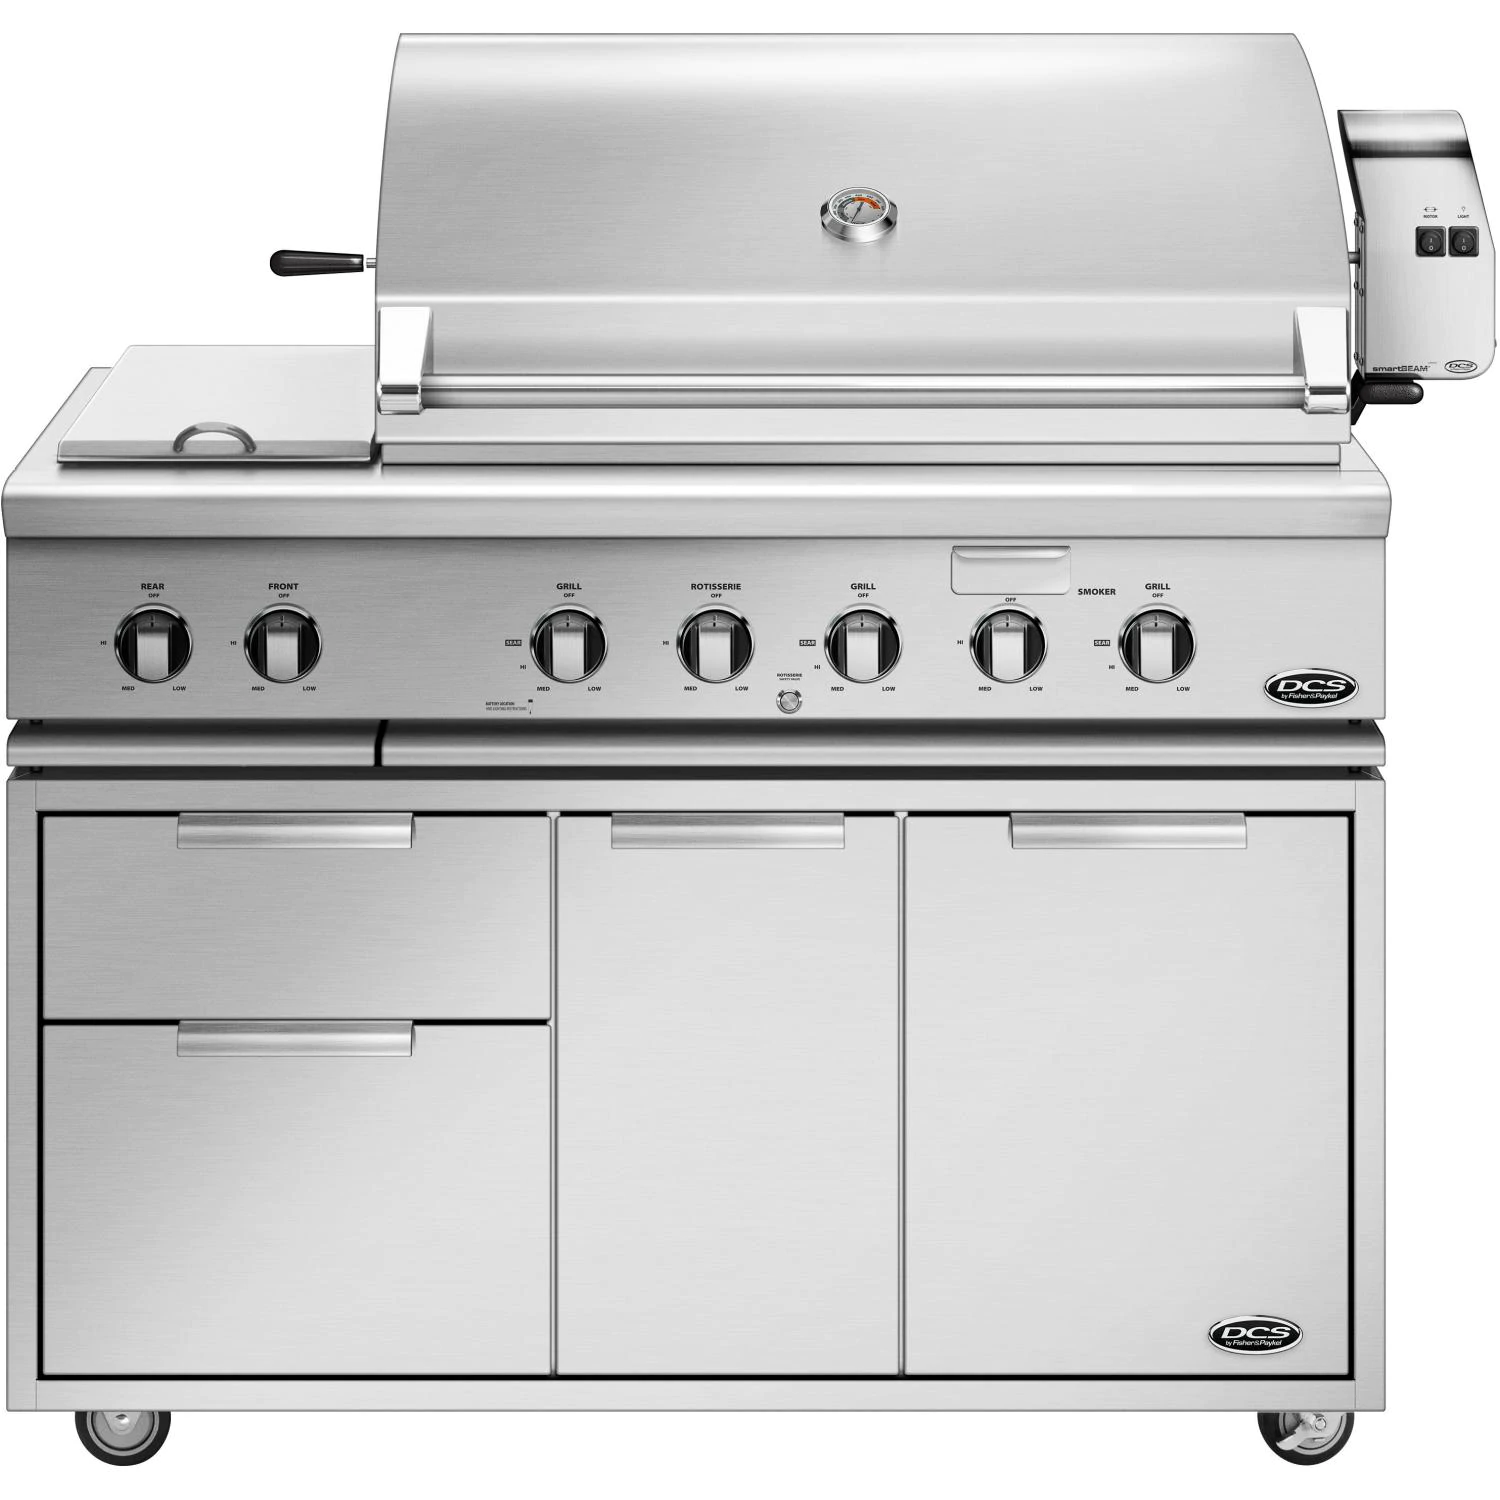 """DCS Series 7 Traditional 48"""" Propane Gas Grill With Double Side Burner & Rotisserie On DCS CAD Cart - bh1-48r-l+cad1-48"""